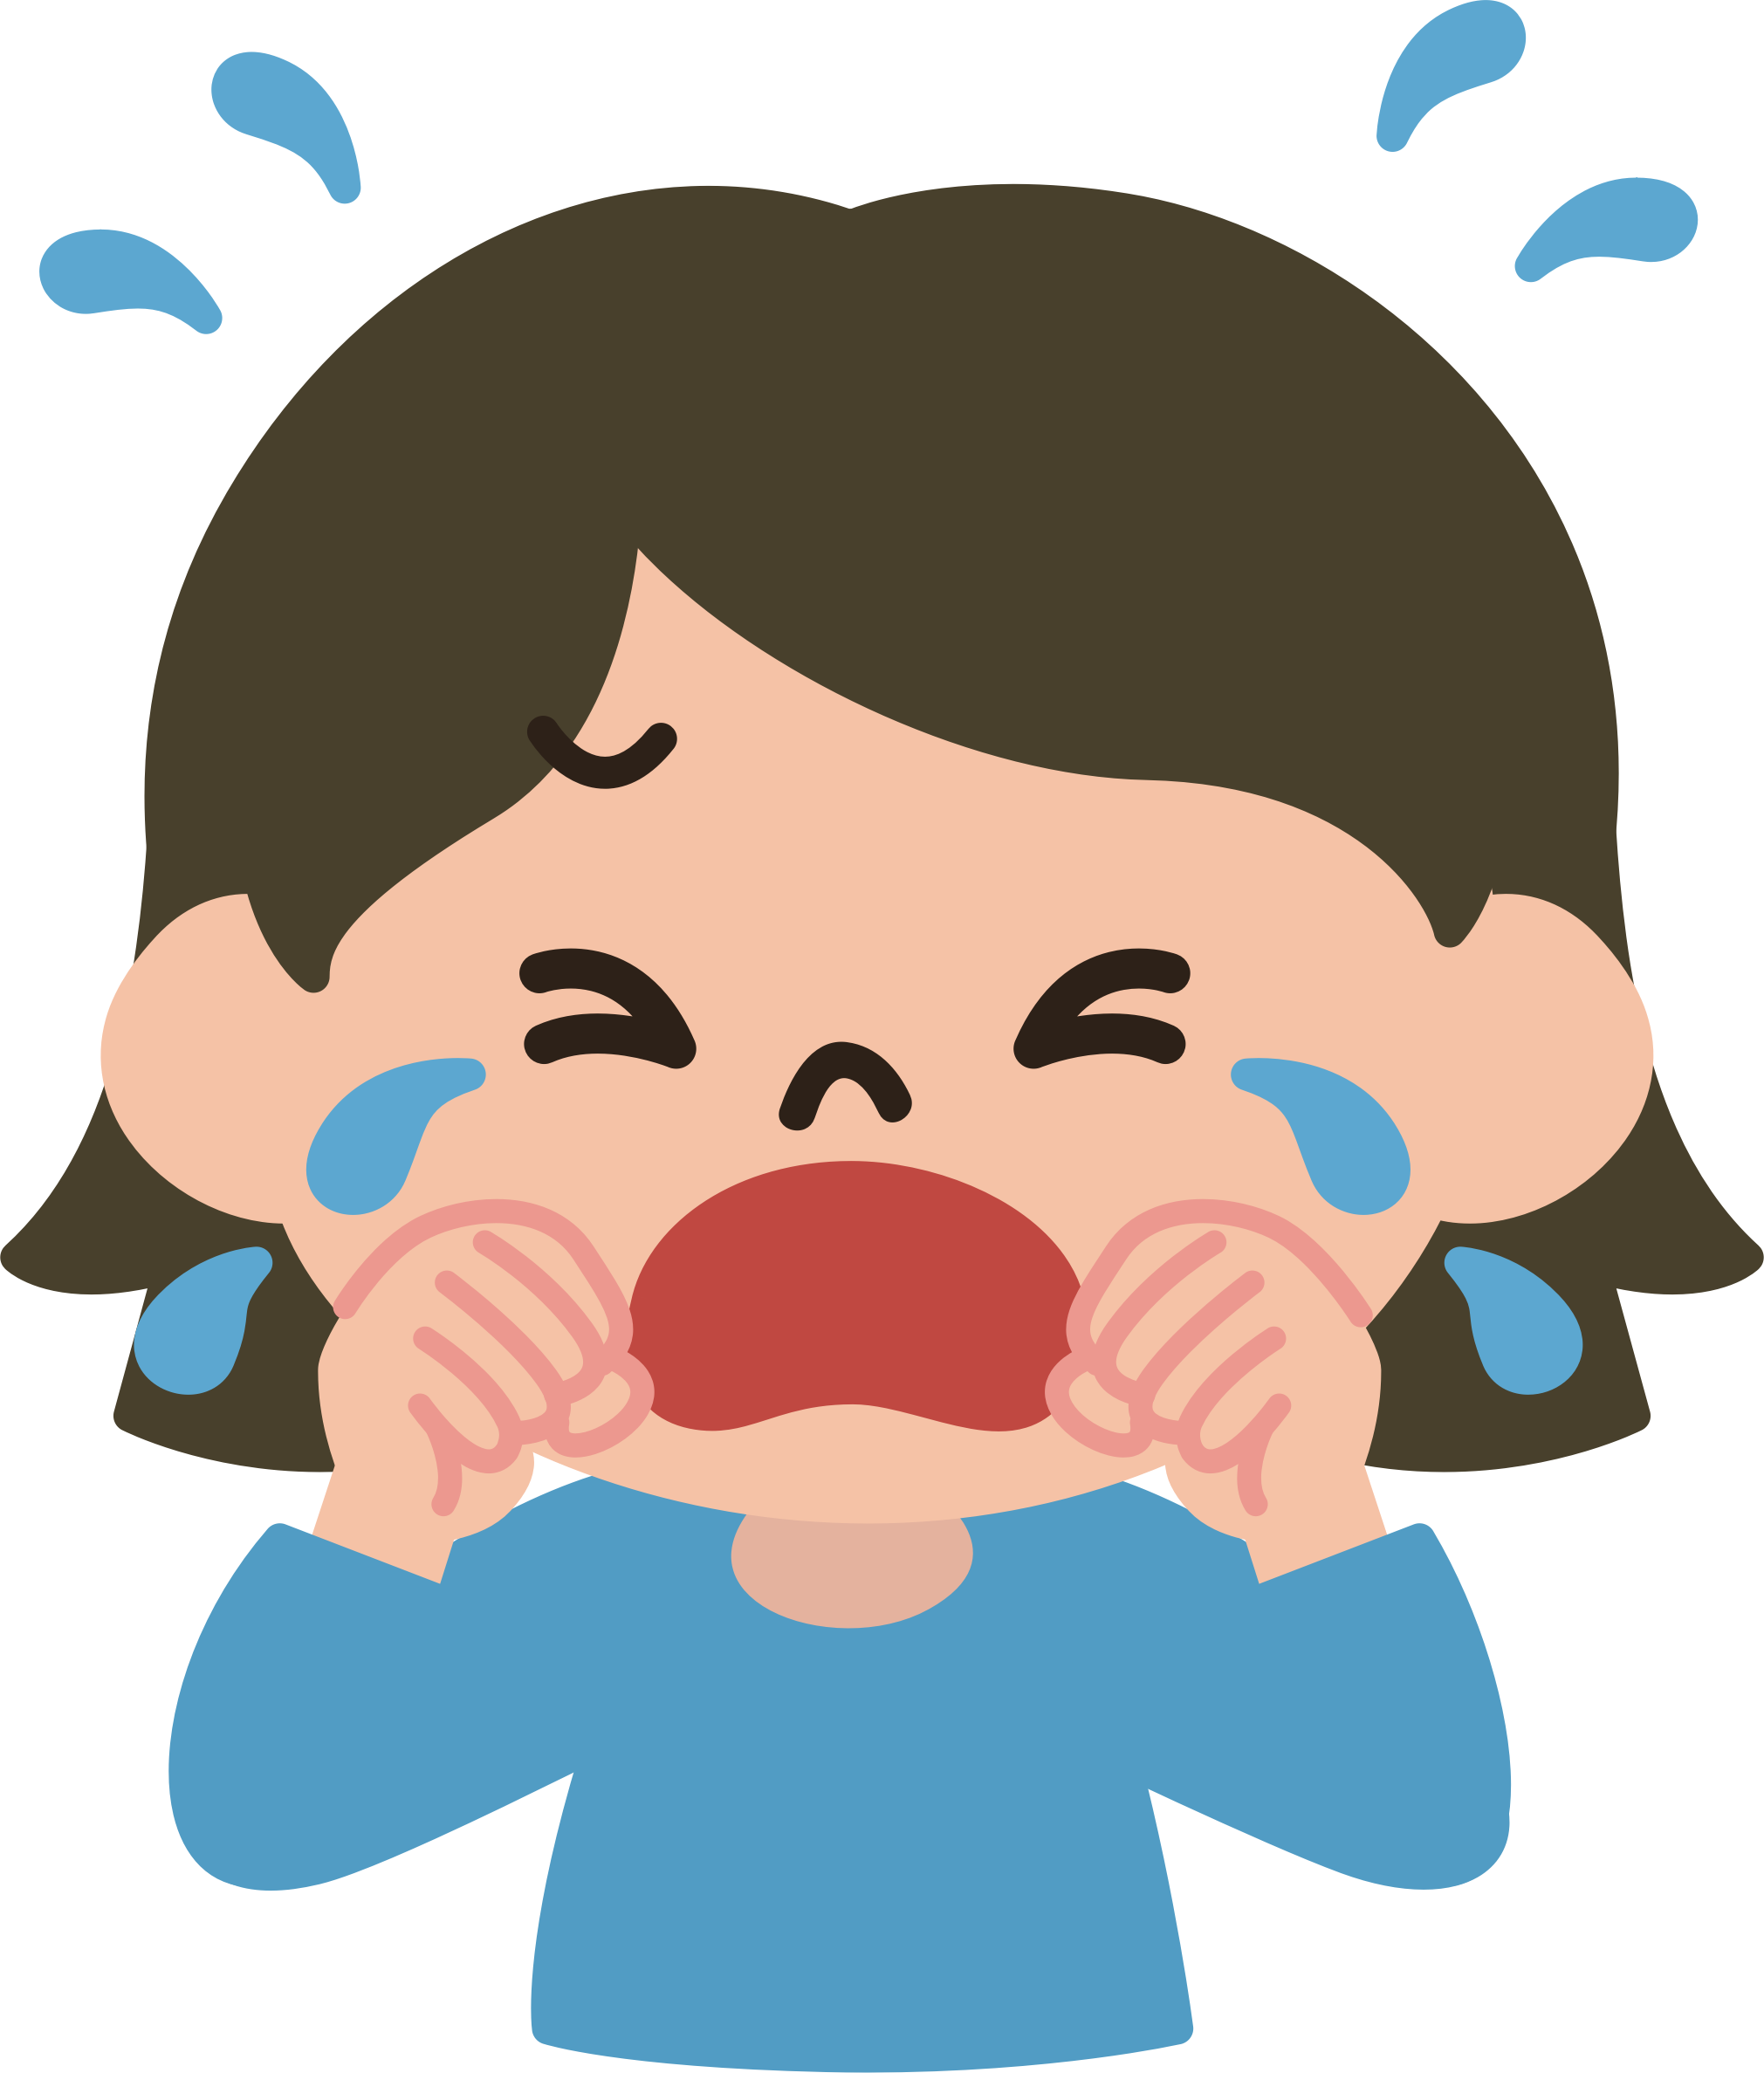 Cry clipart sad woman. Tears picture black